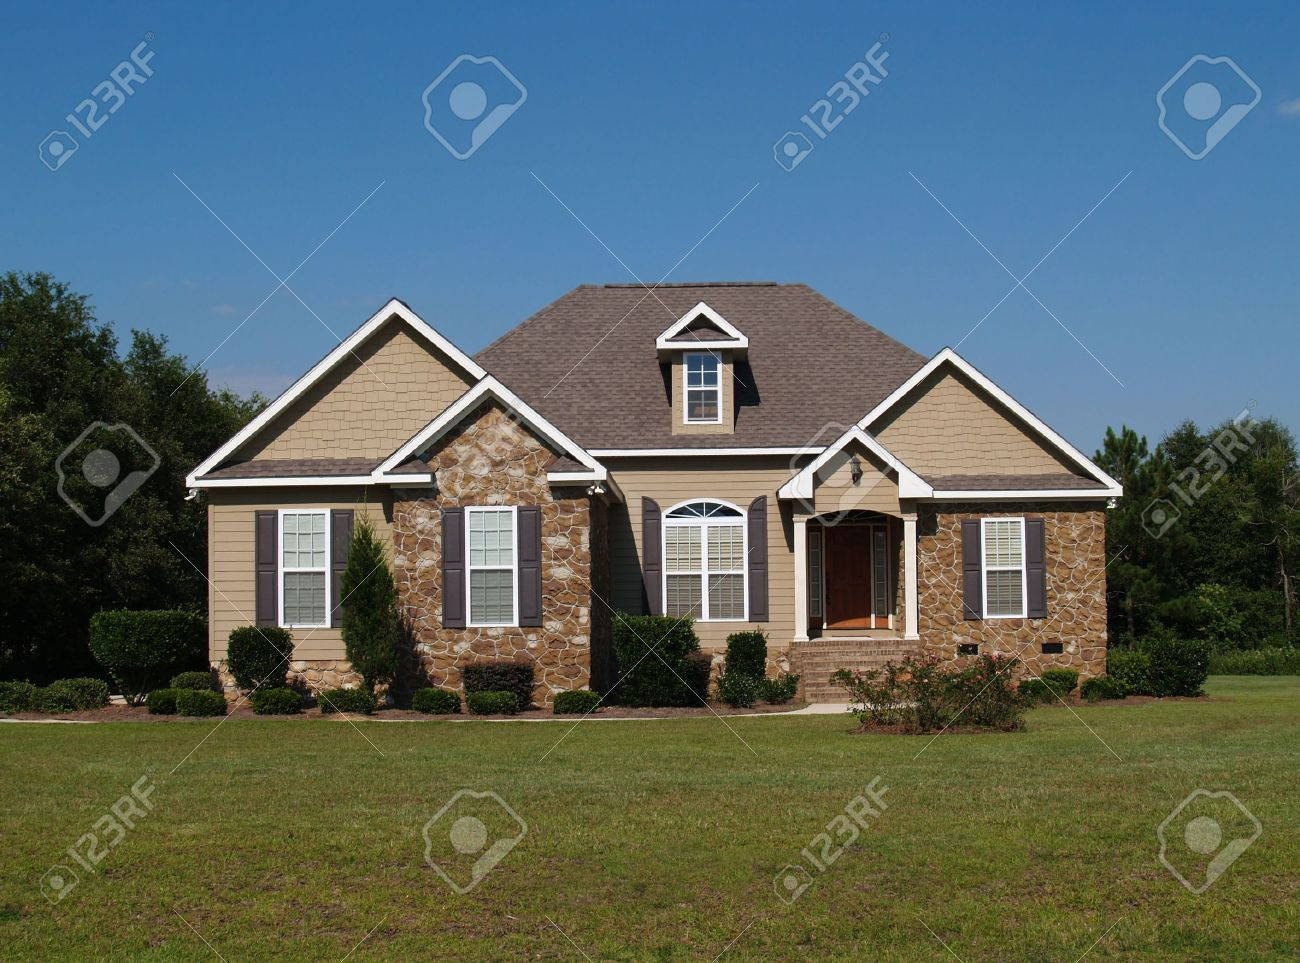 Single story stone and vinyl residential home. Stock Photo - 5681021